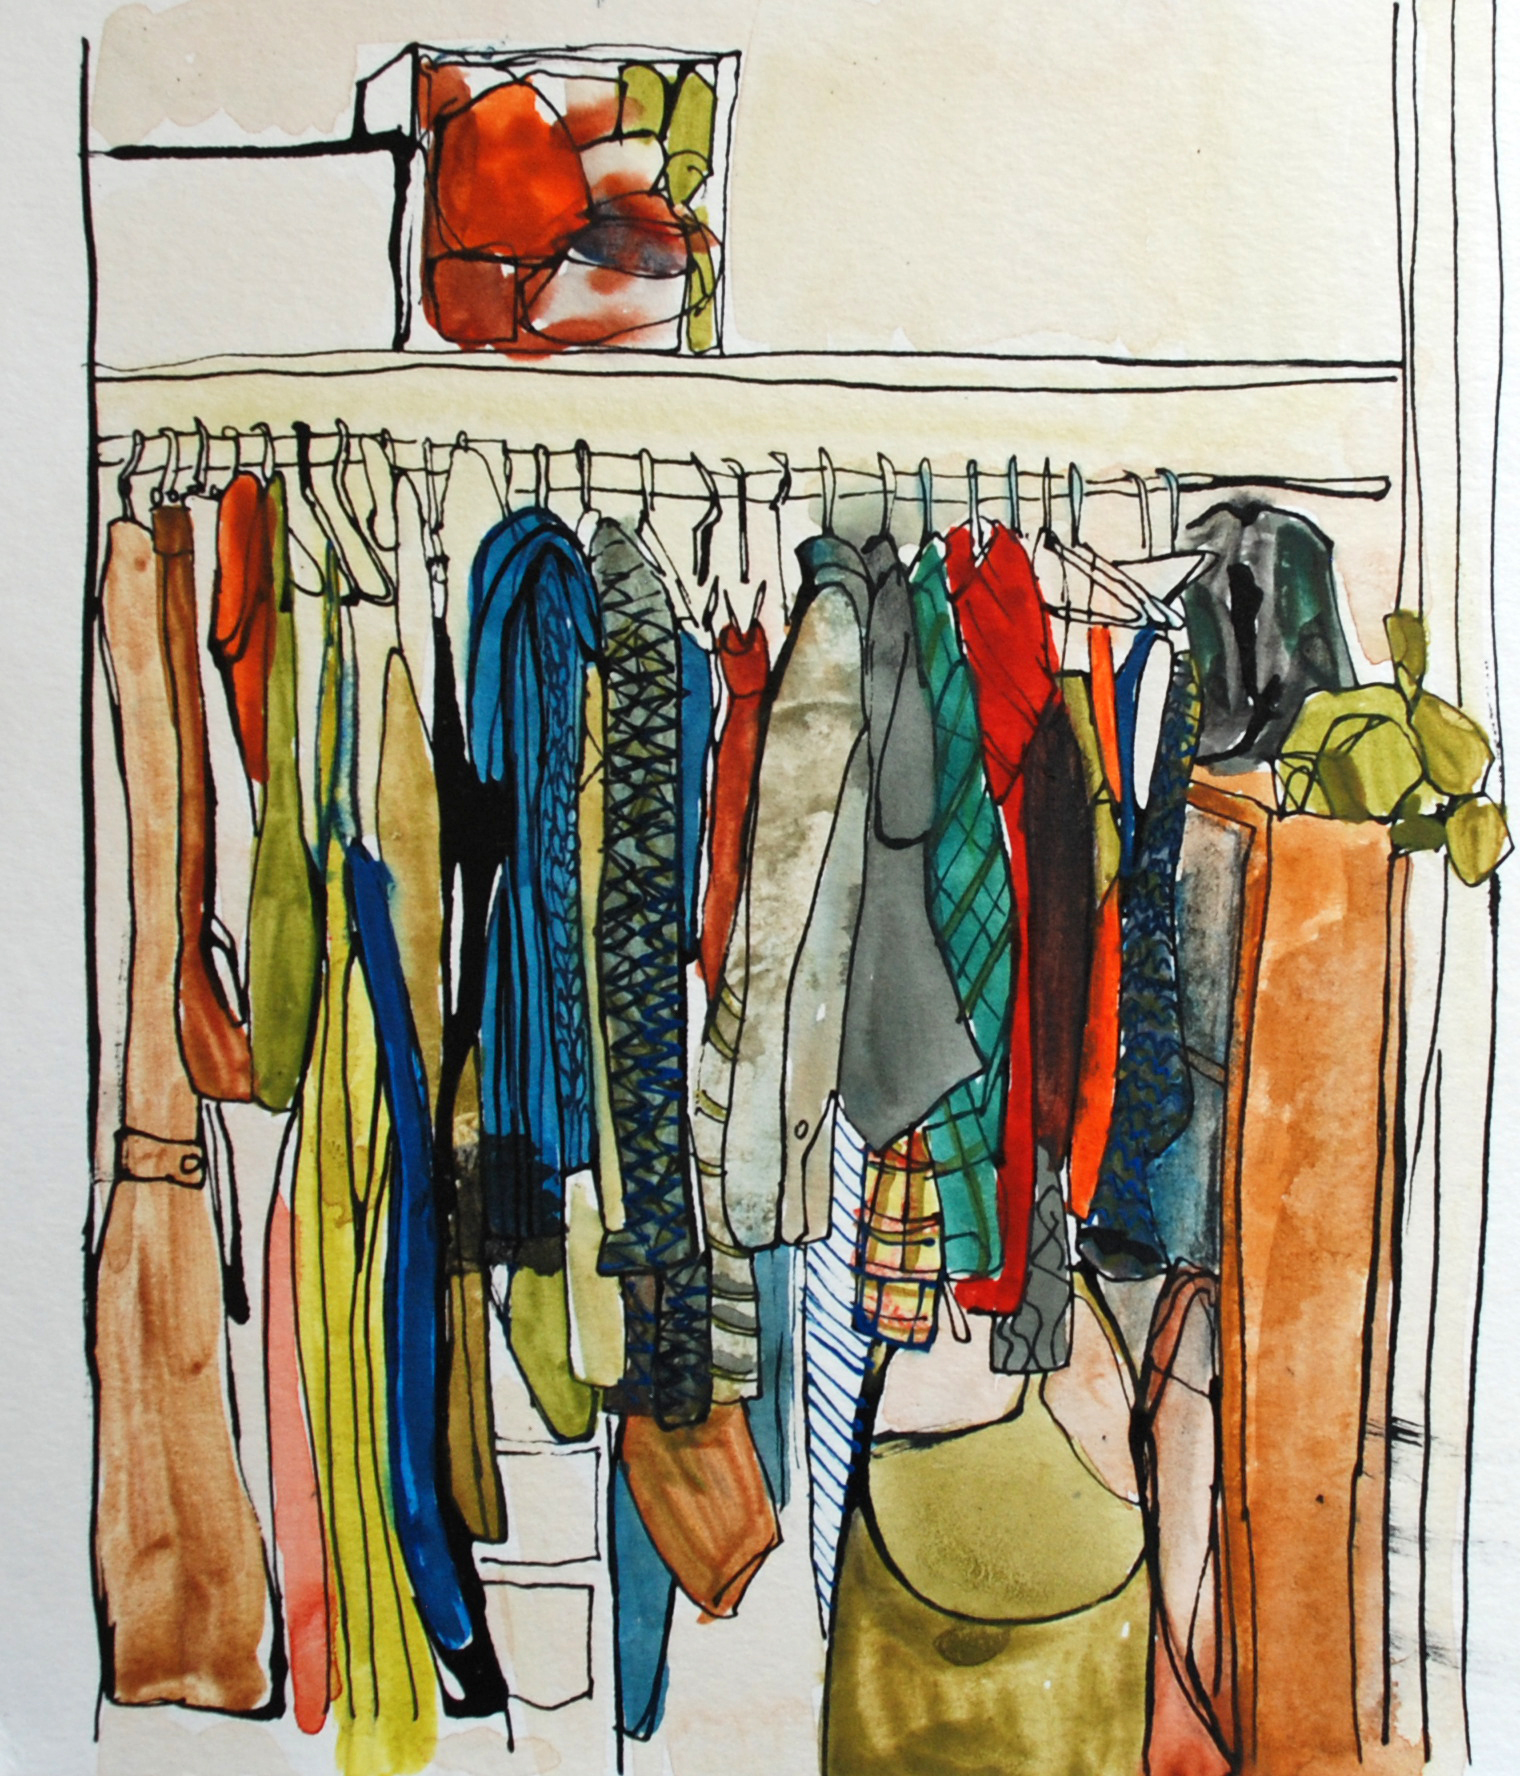 70: Arranging new closets- Sold